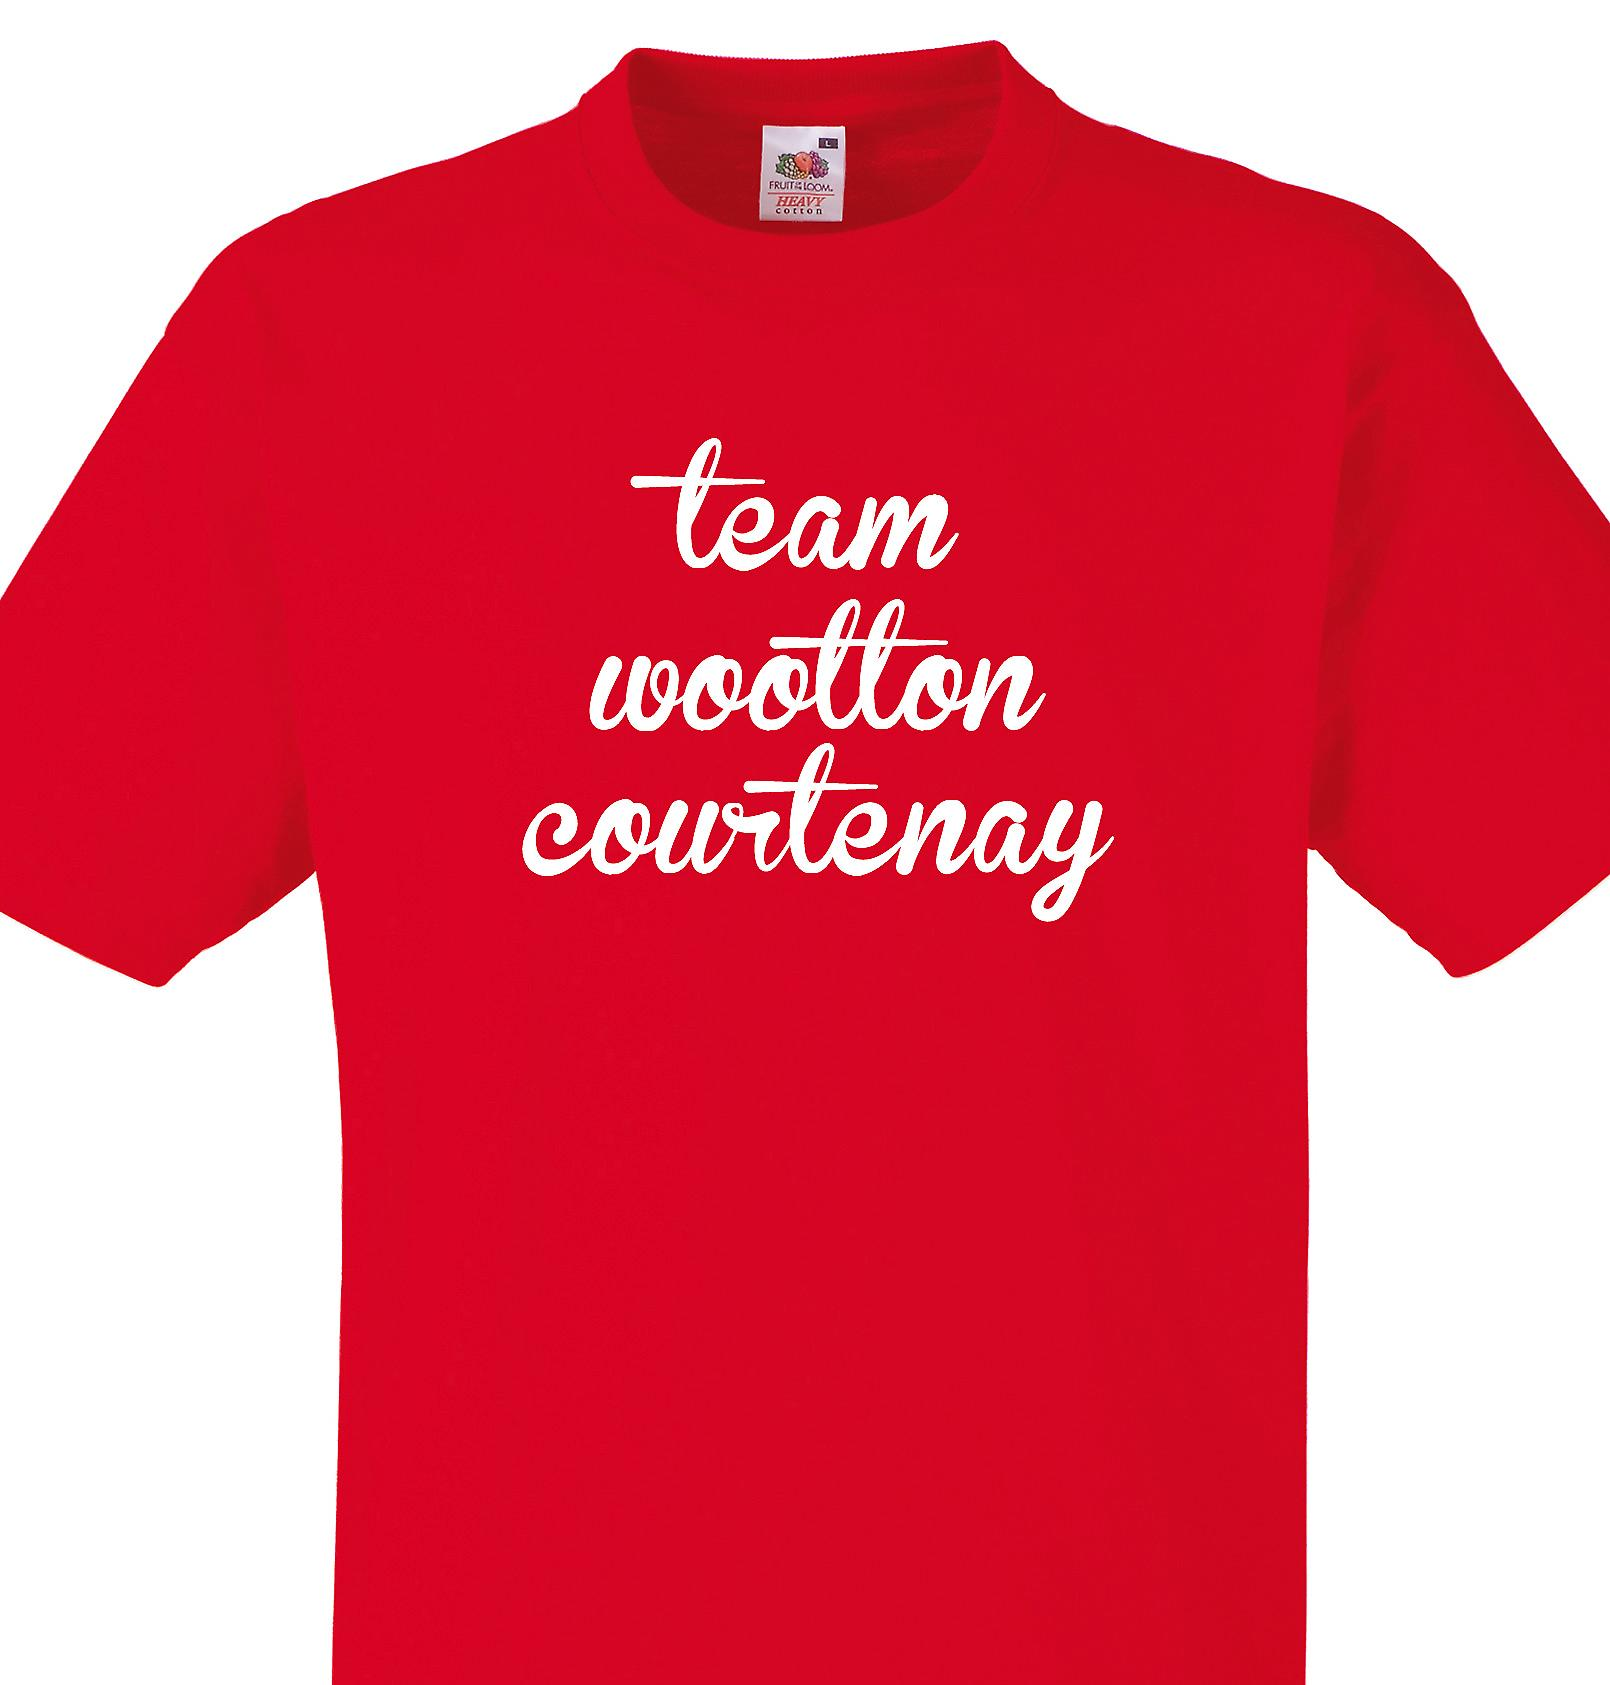 Team Wootton courtenay Red T shirt